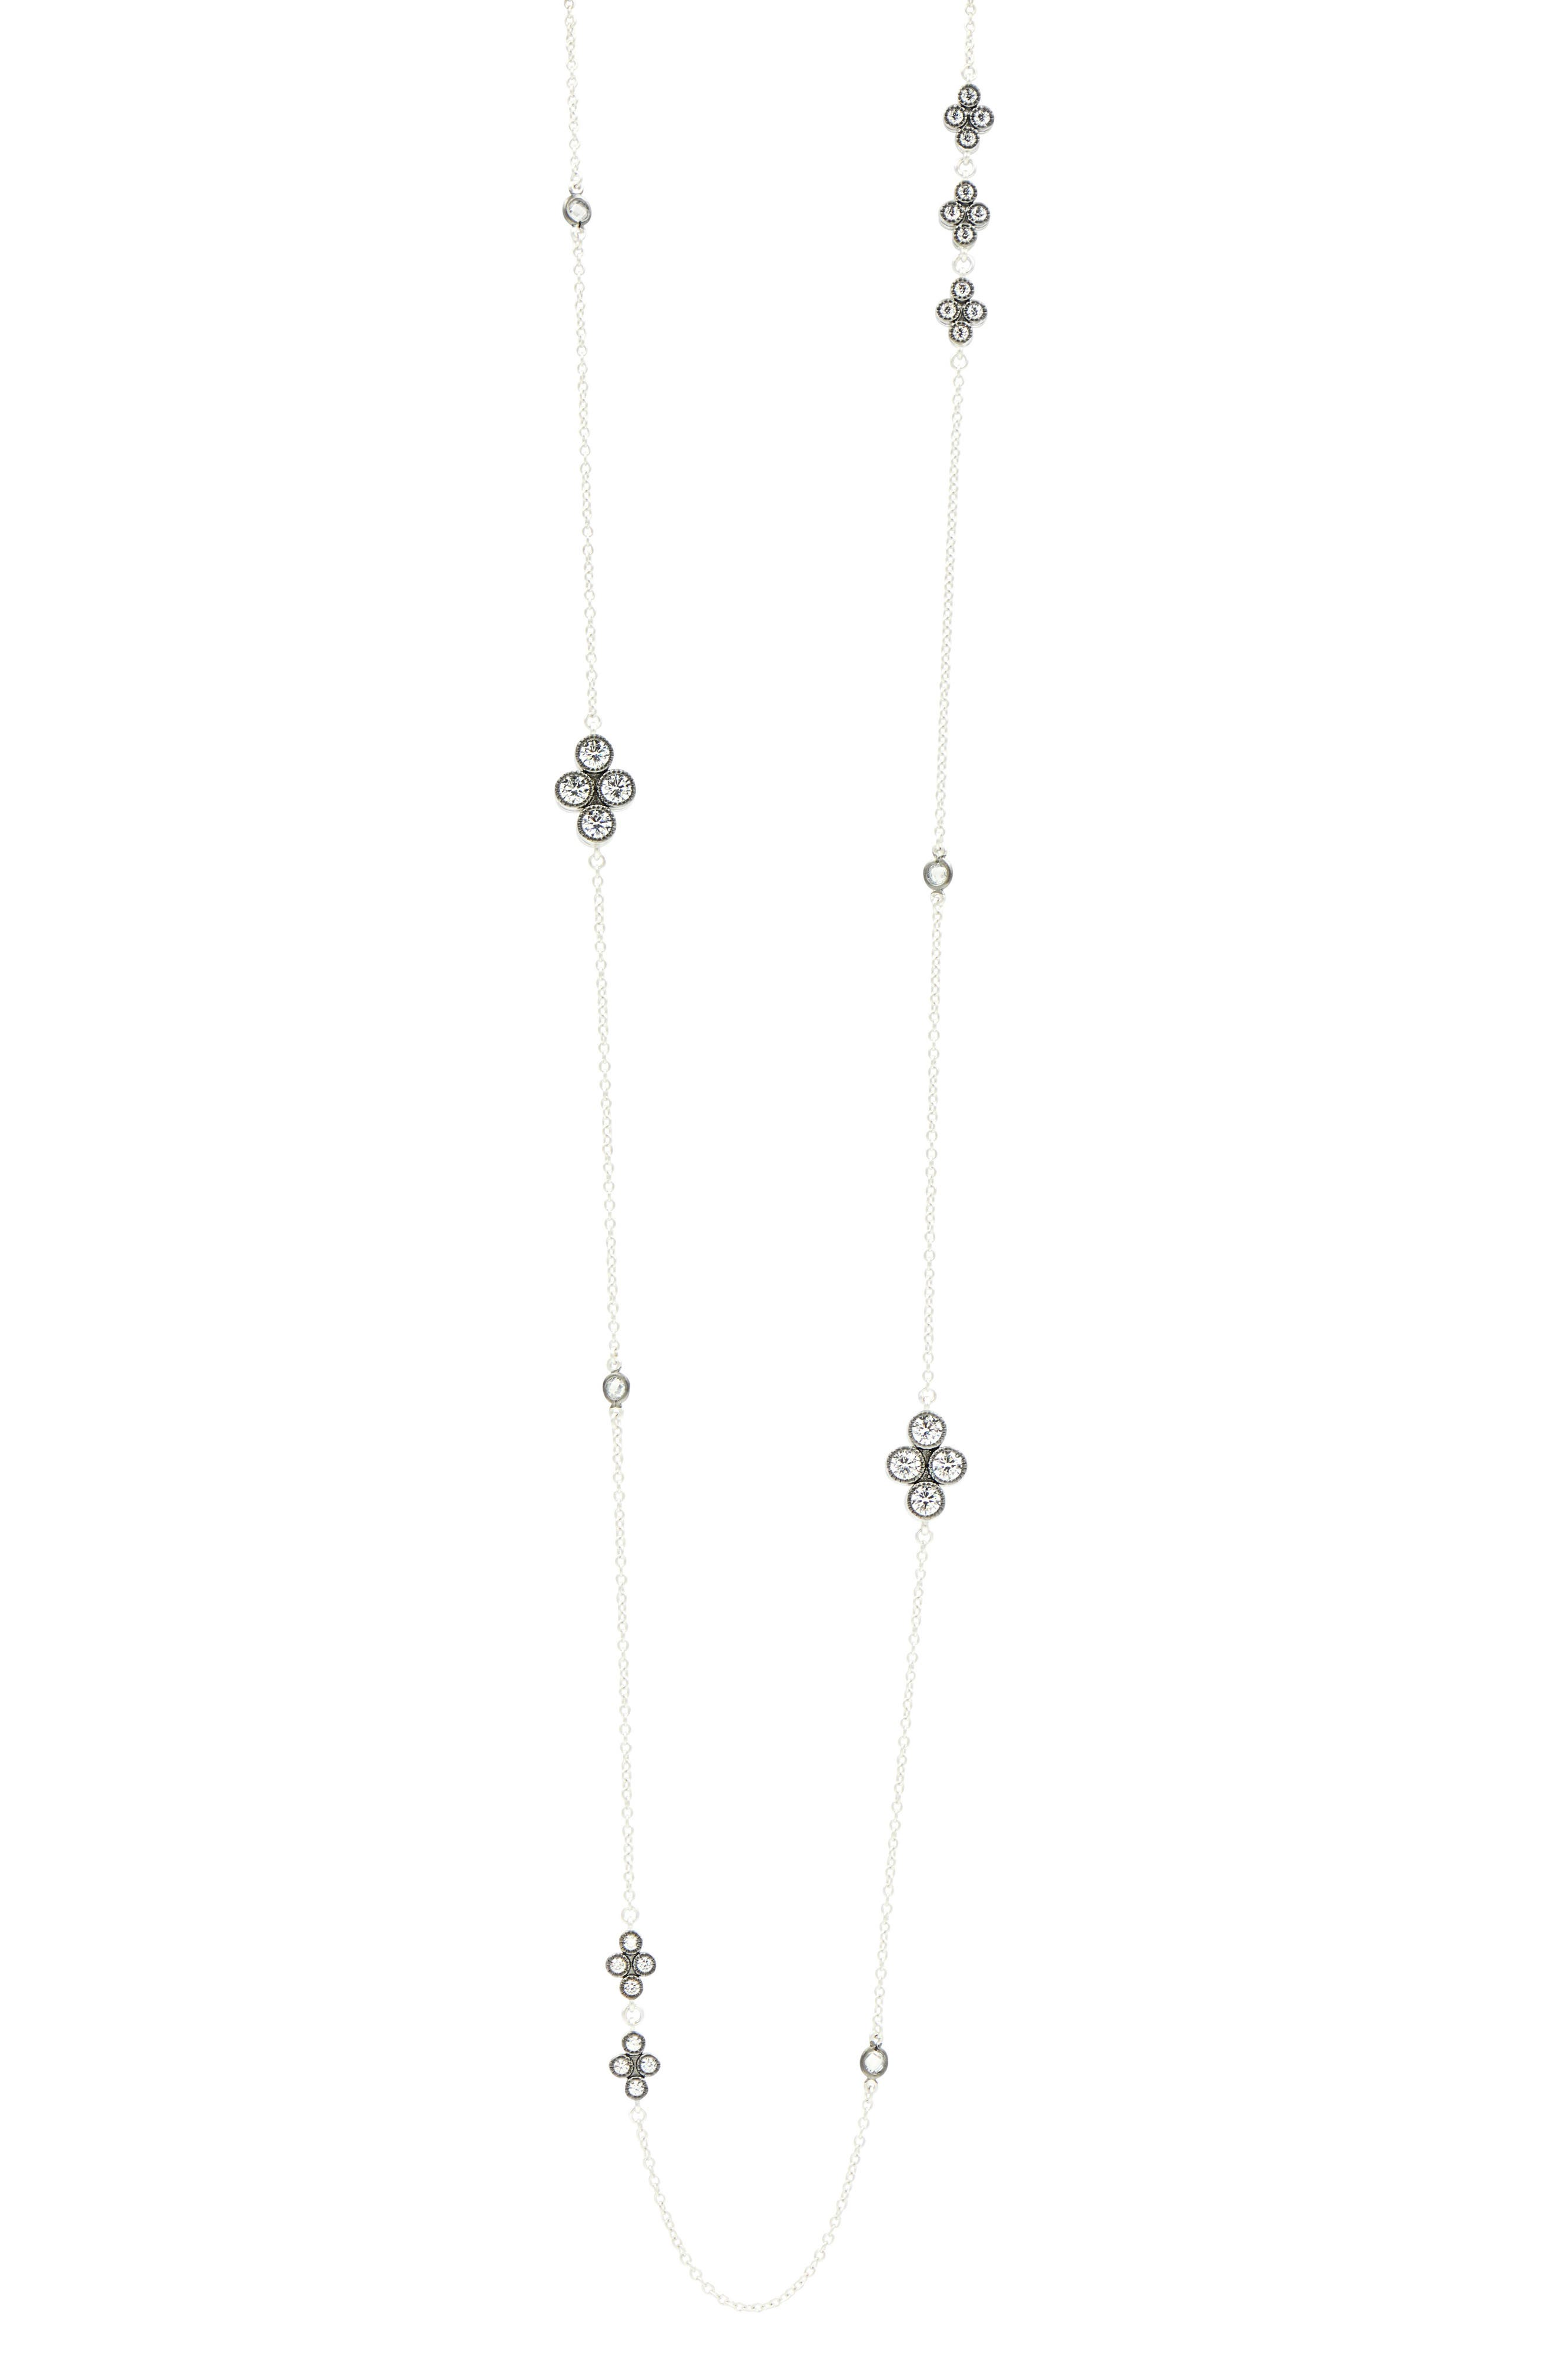 Industrial Finish Long Station Necklace,                             Main thumbnail 1, color,                             Black/ Silver